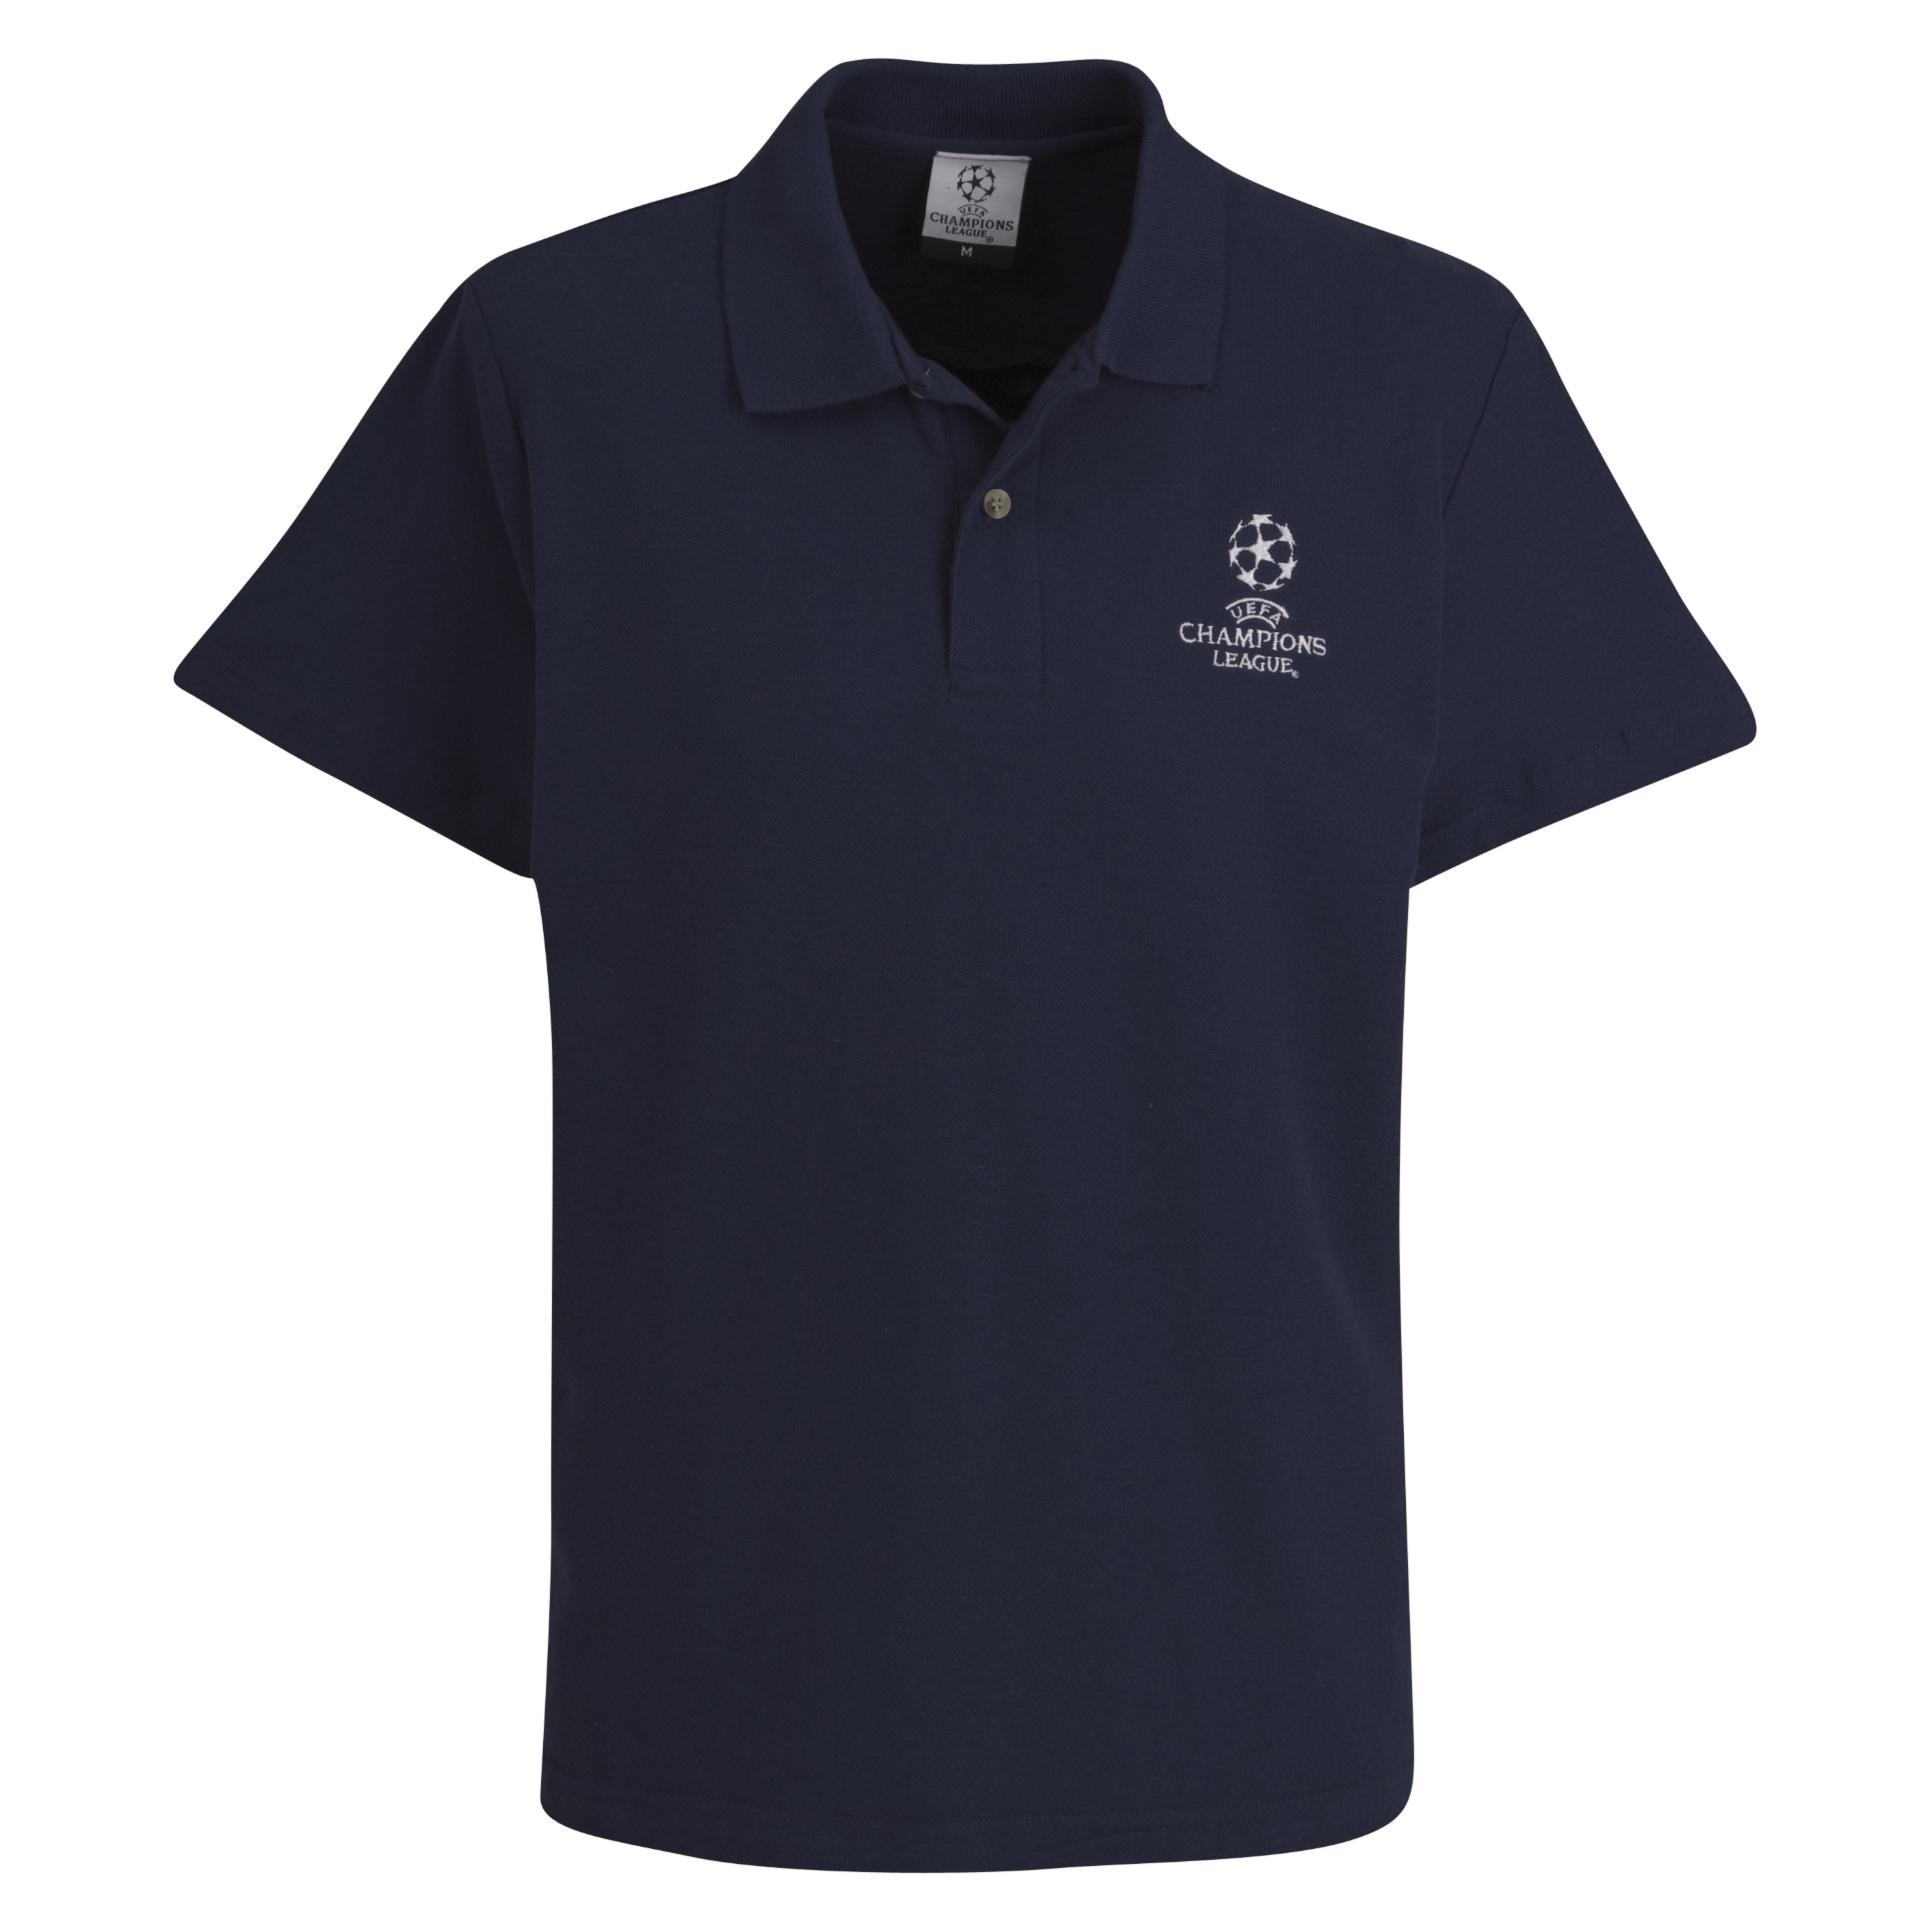 UEFA Champions League Pique Polo - Navy - Kids